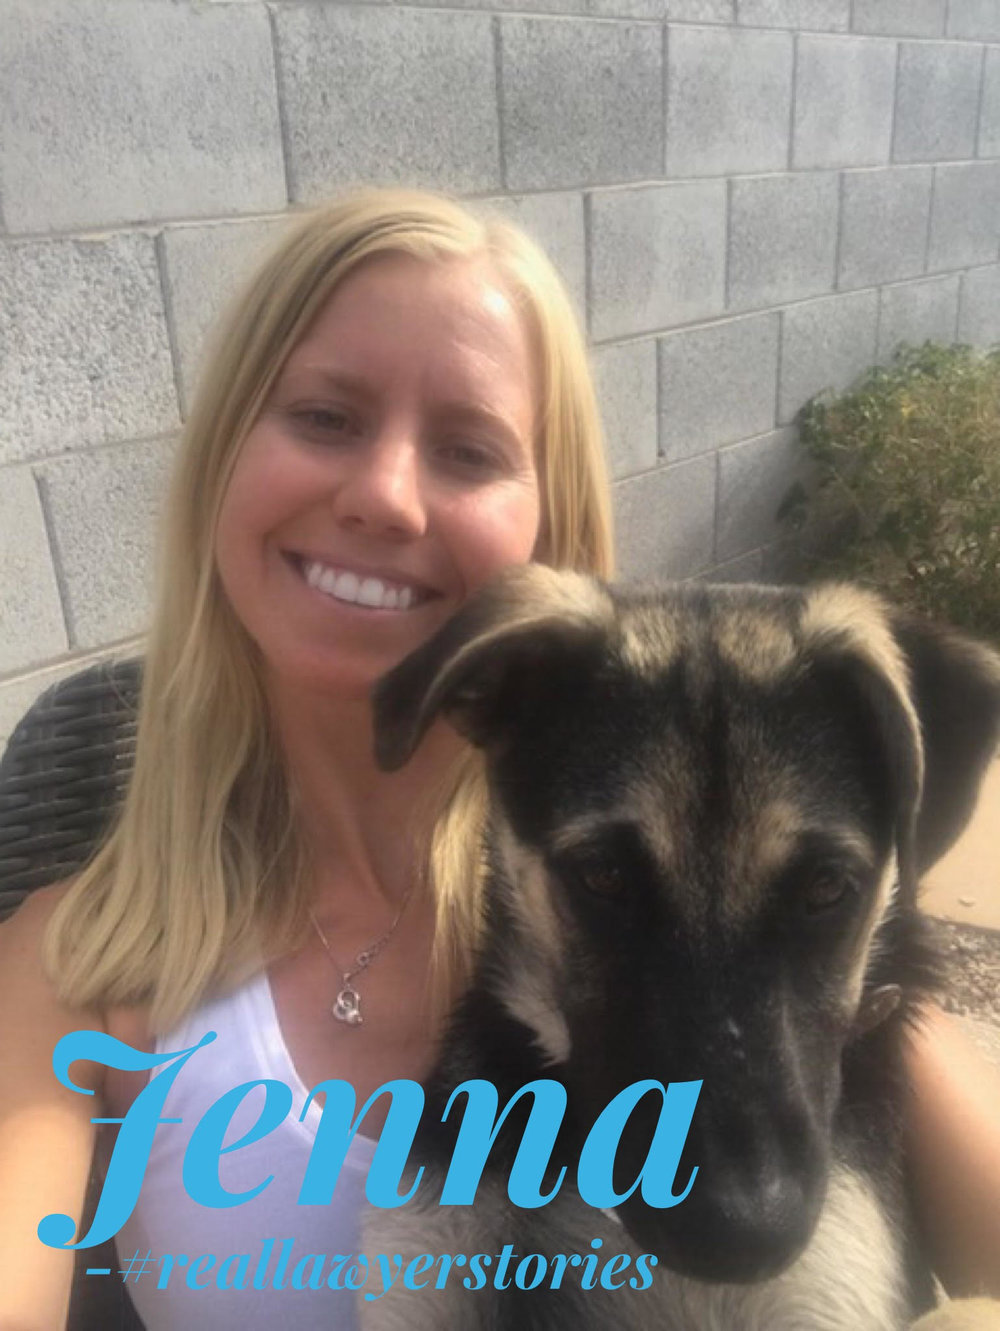 Jenna - @californiawesternschooloflaw#reallawyerstories